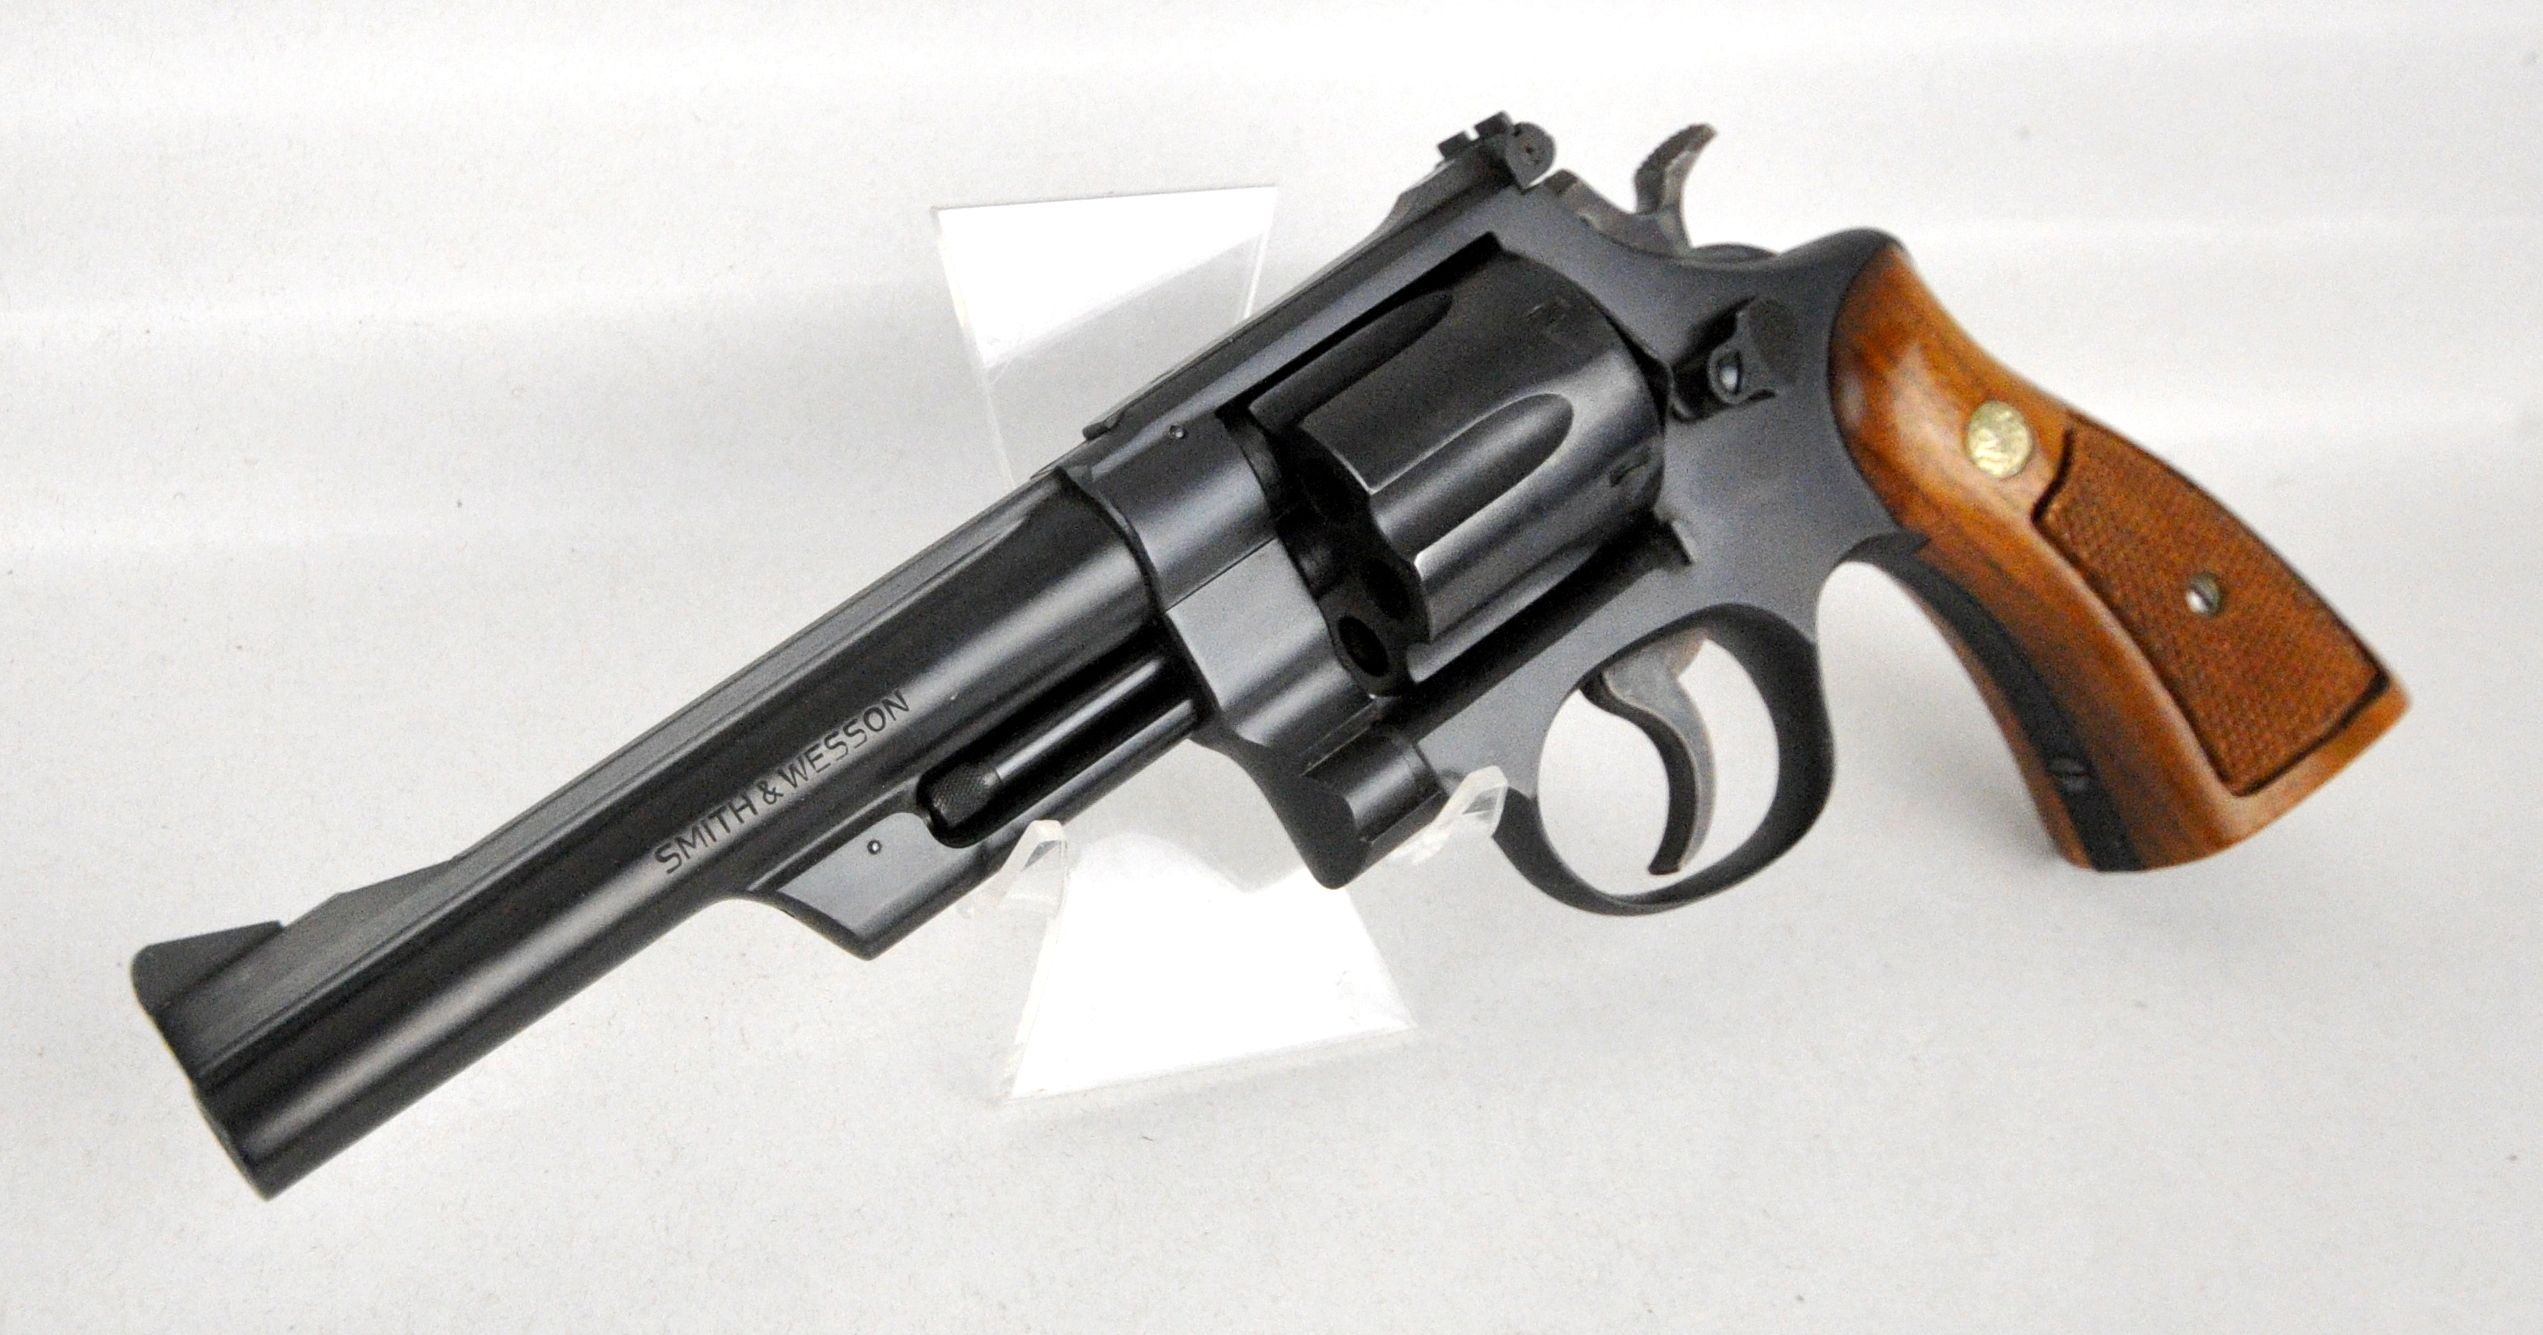 Smith & Wesson - Model 28-2 Highway Patrolman 357 mag - Picture 1 ...